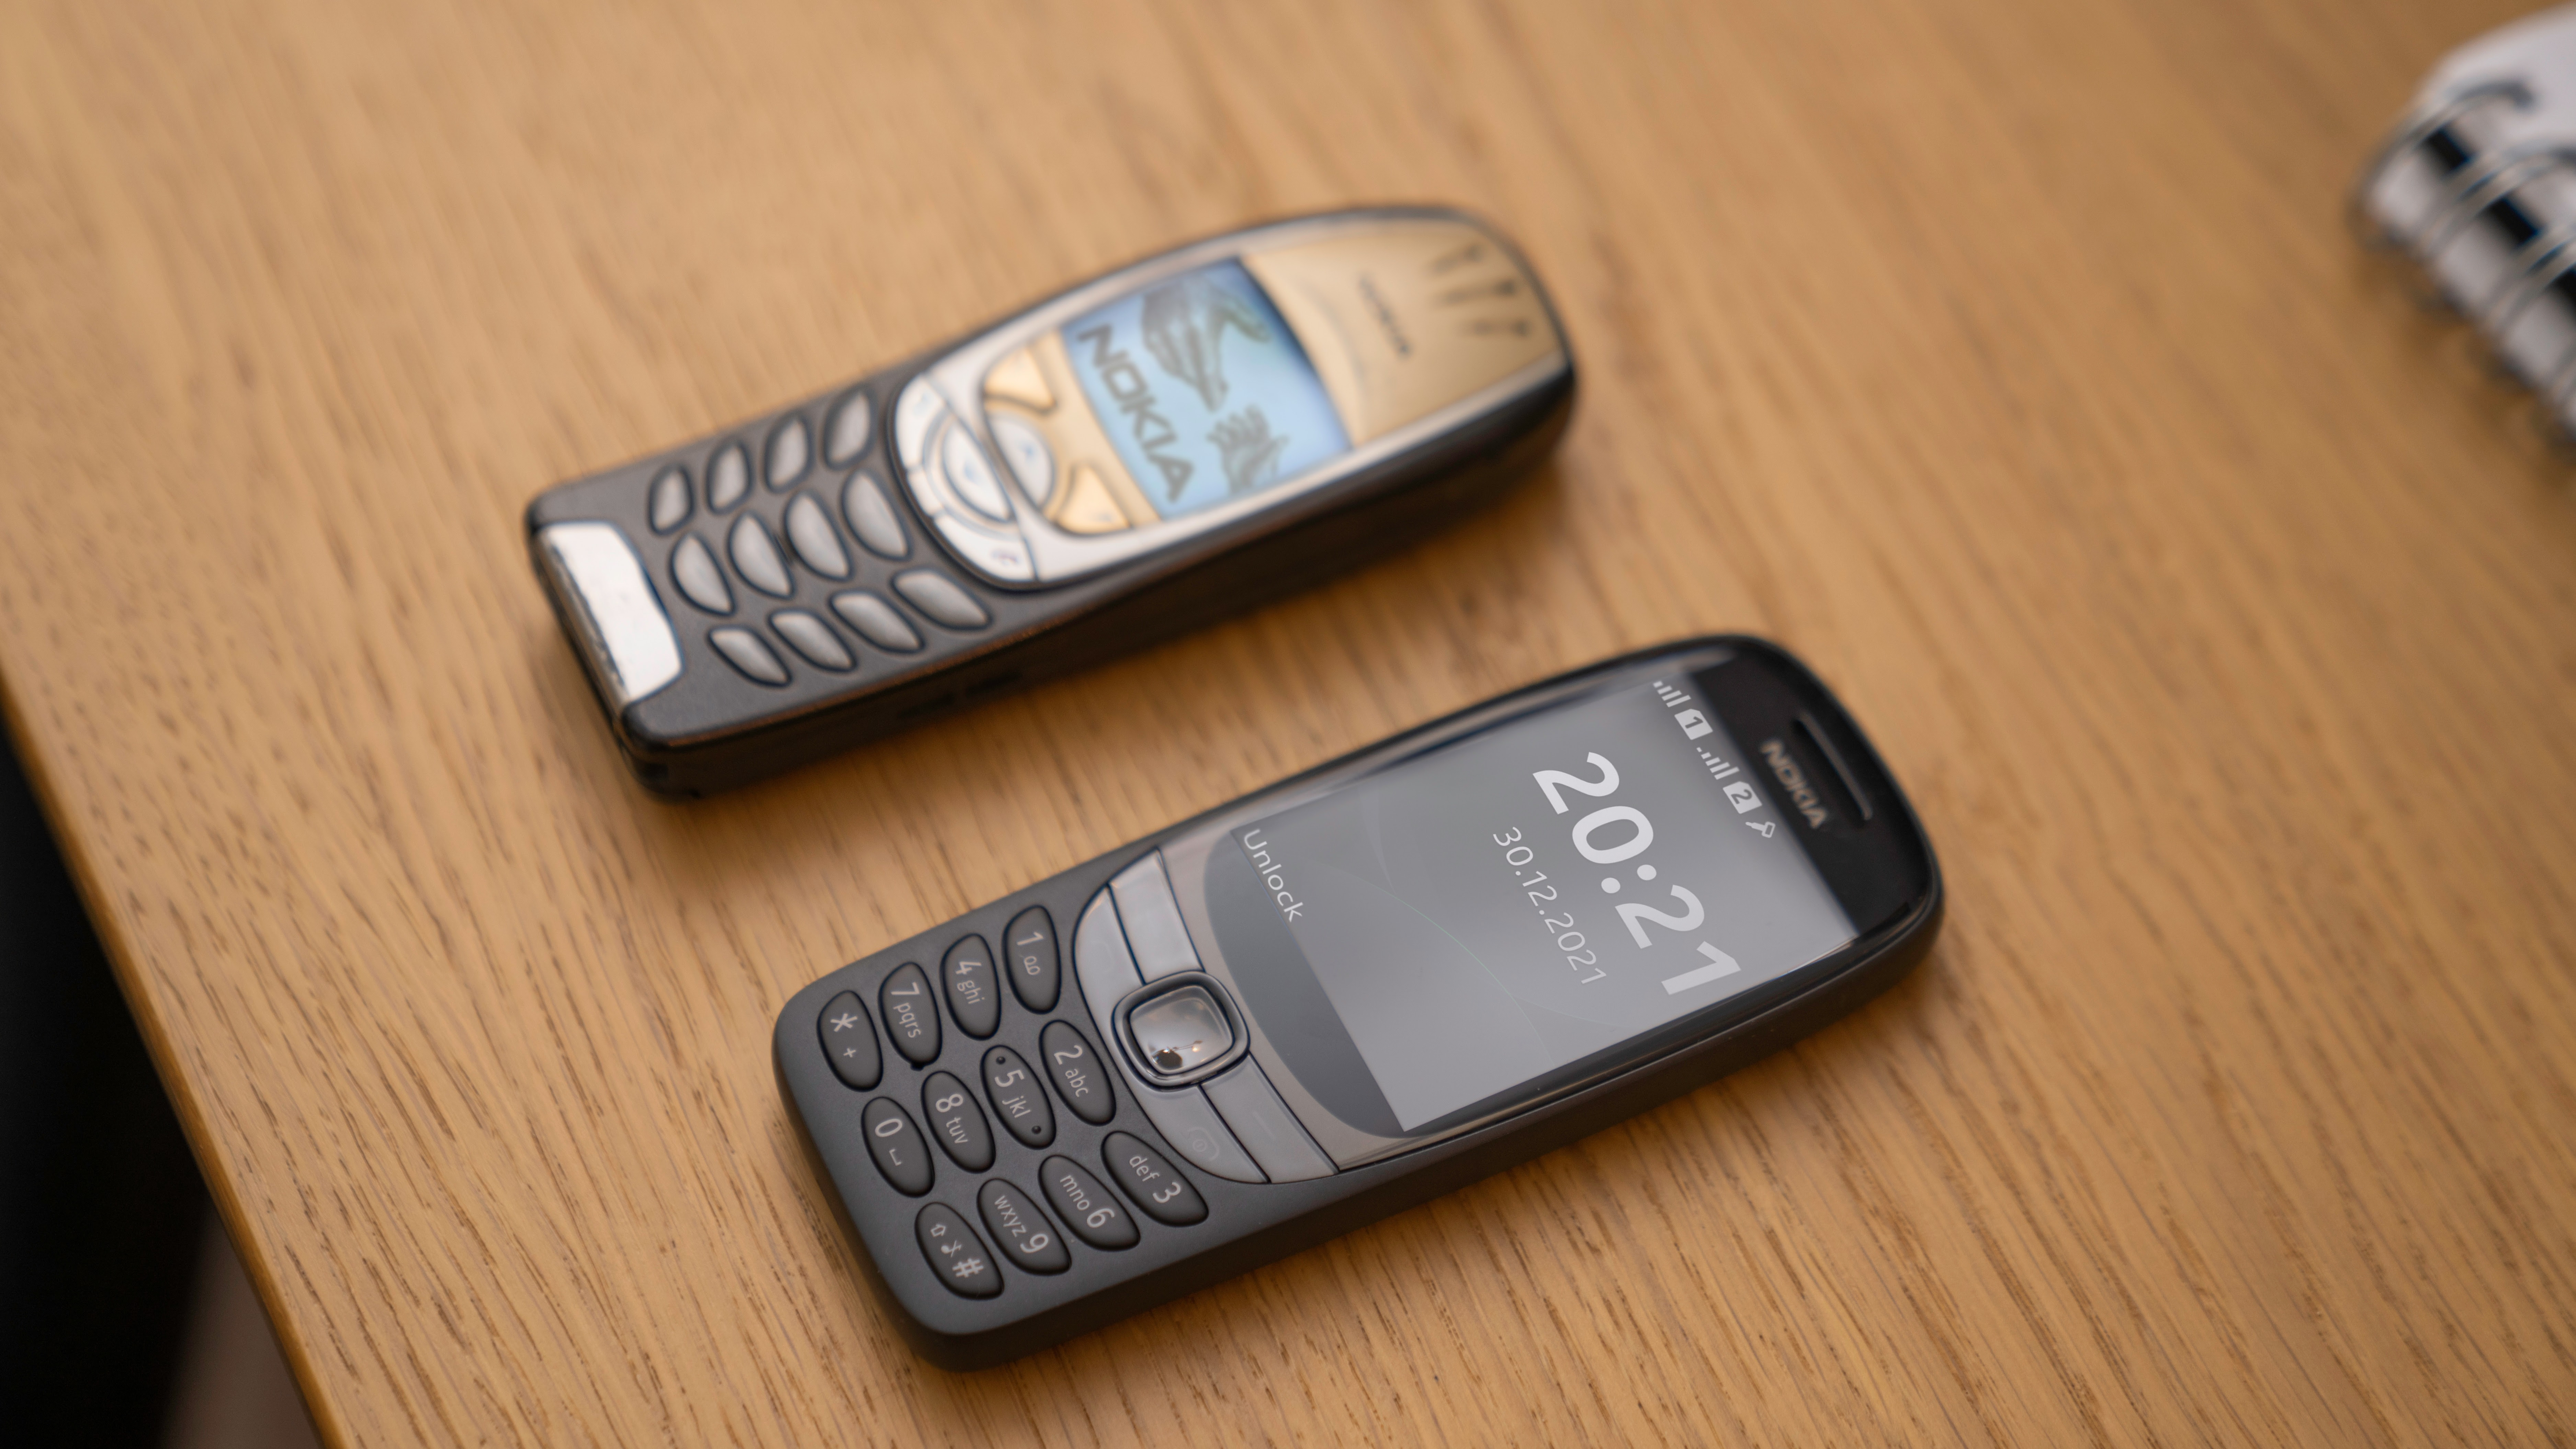 Nokia brings back 'brick' 6310 phone featuring Snake and 22-day battery life